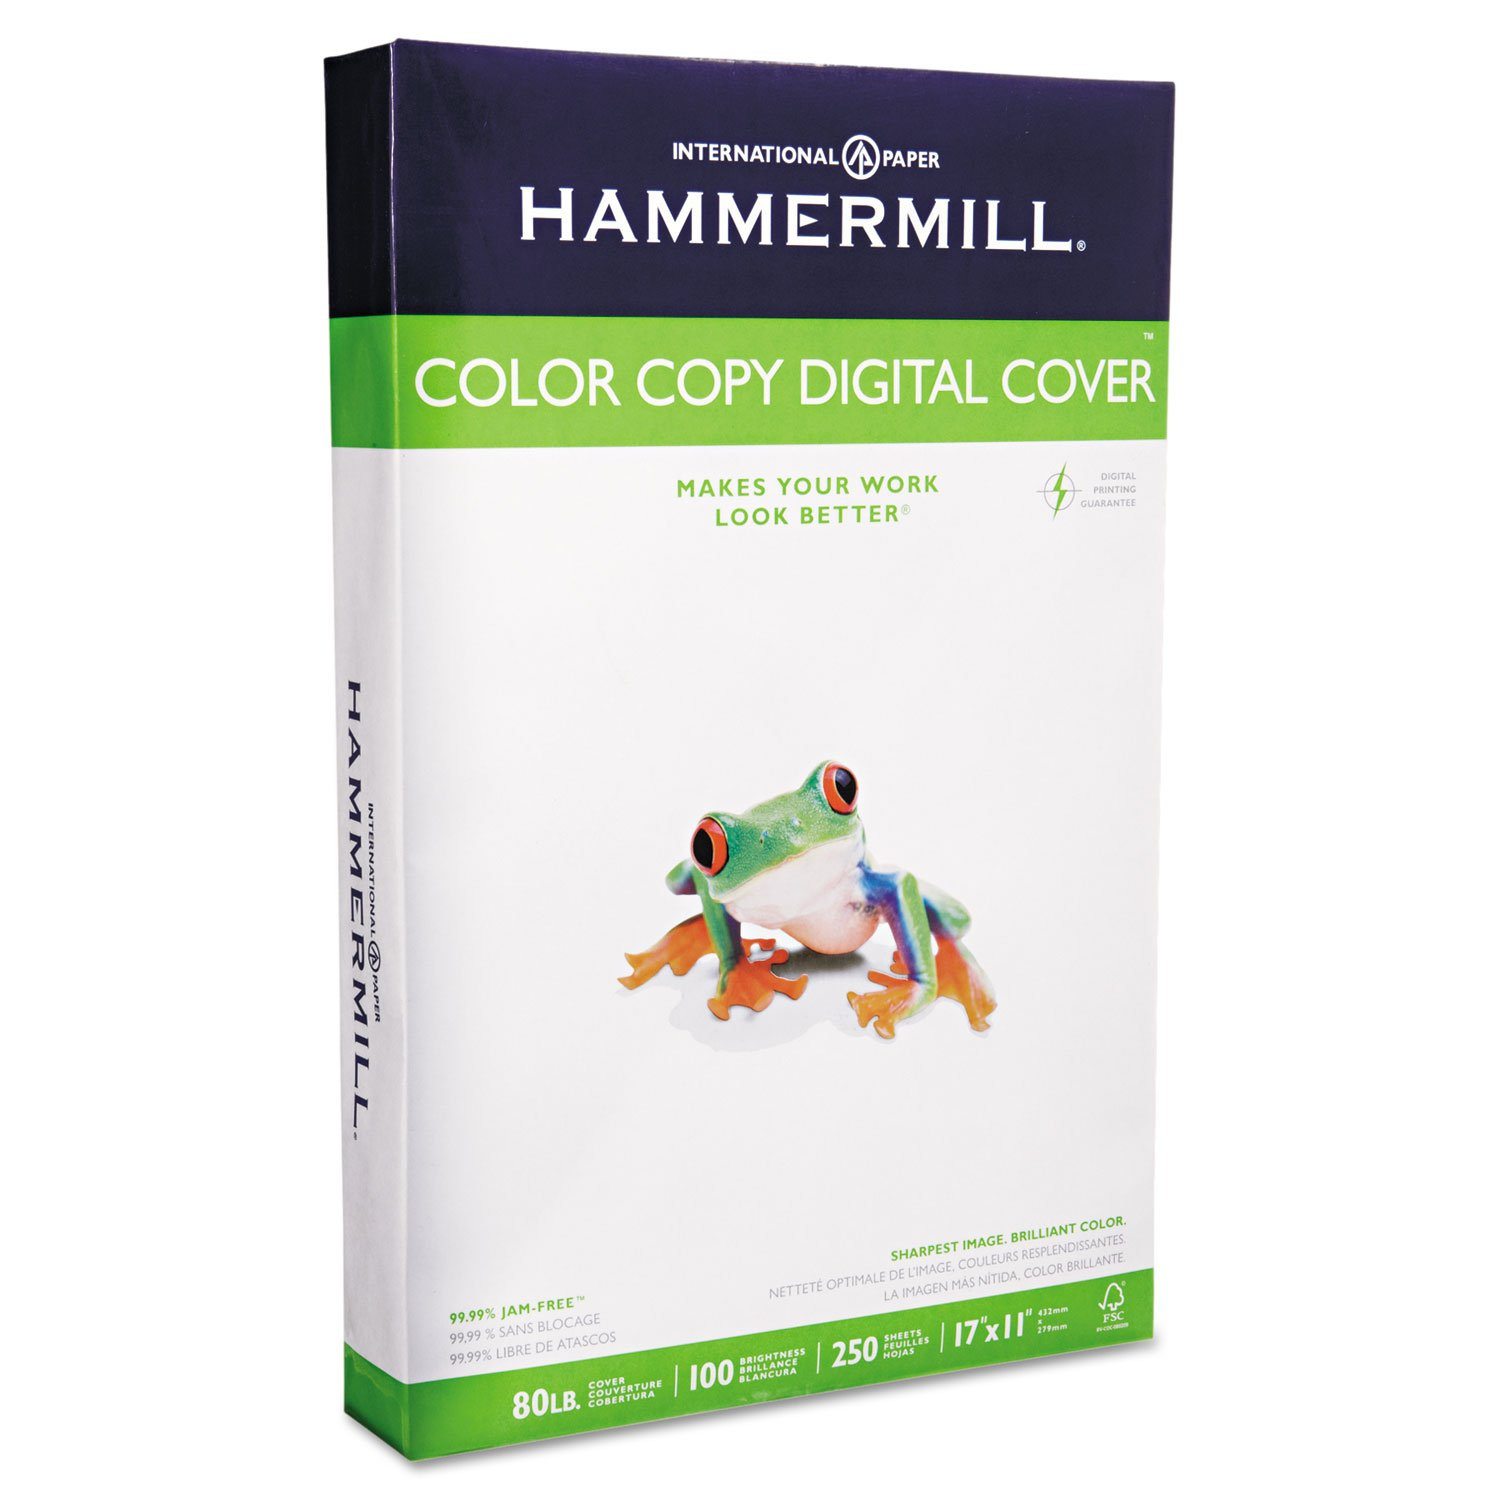 Hammermill 120037 Copier Digital Cover Stock, 80 lbs, 17 x 11, Photo White, 250 Sheets by Hammermill